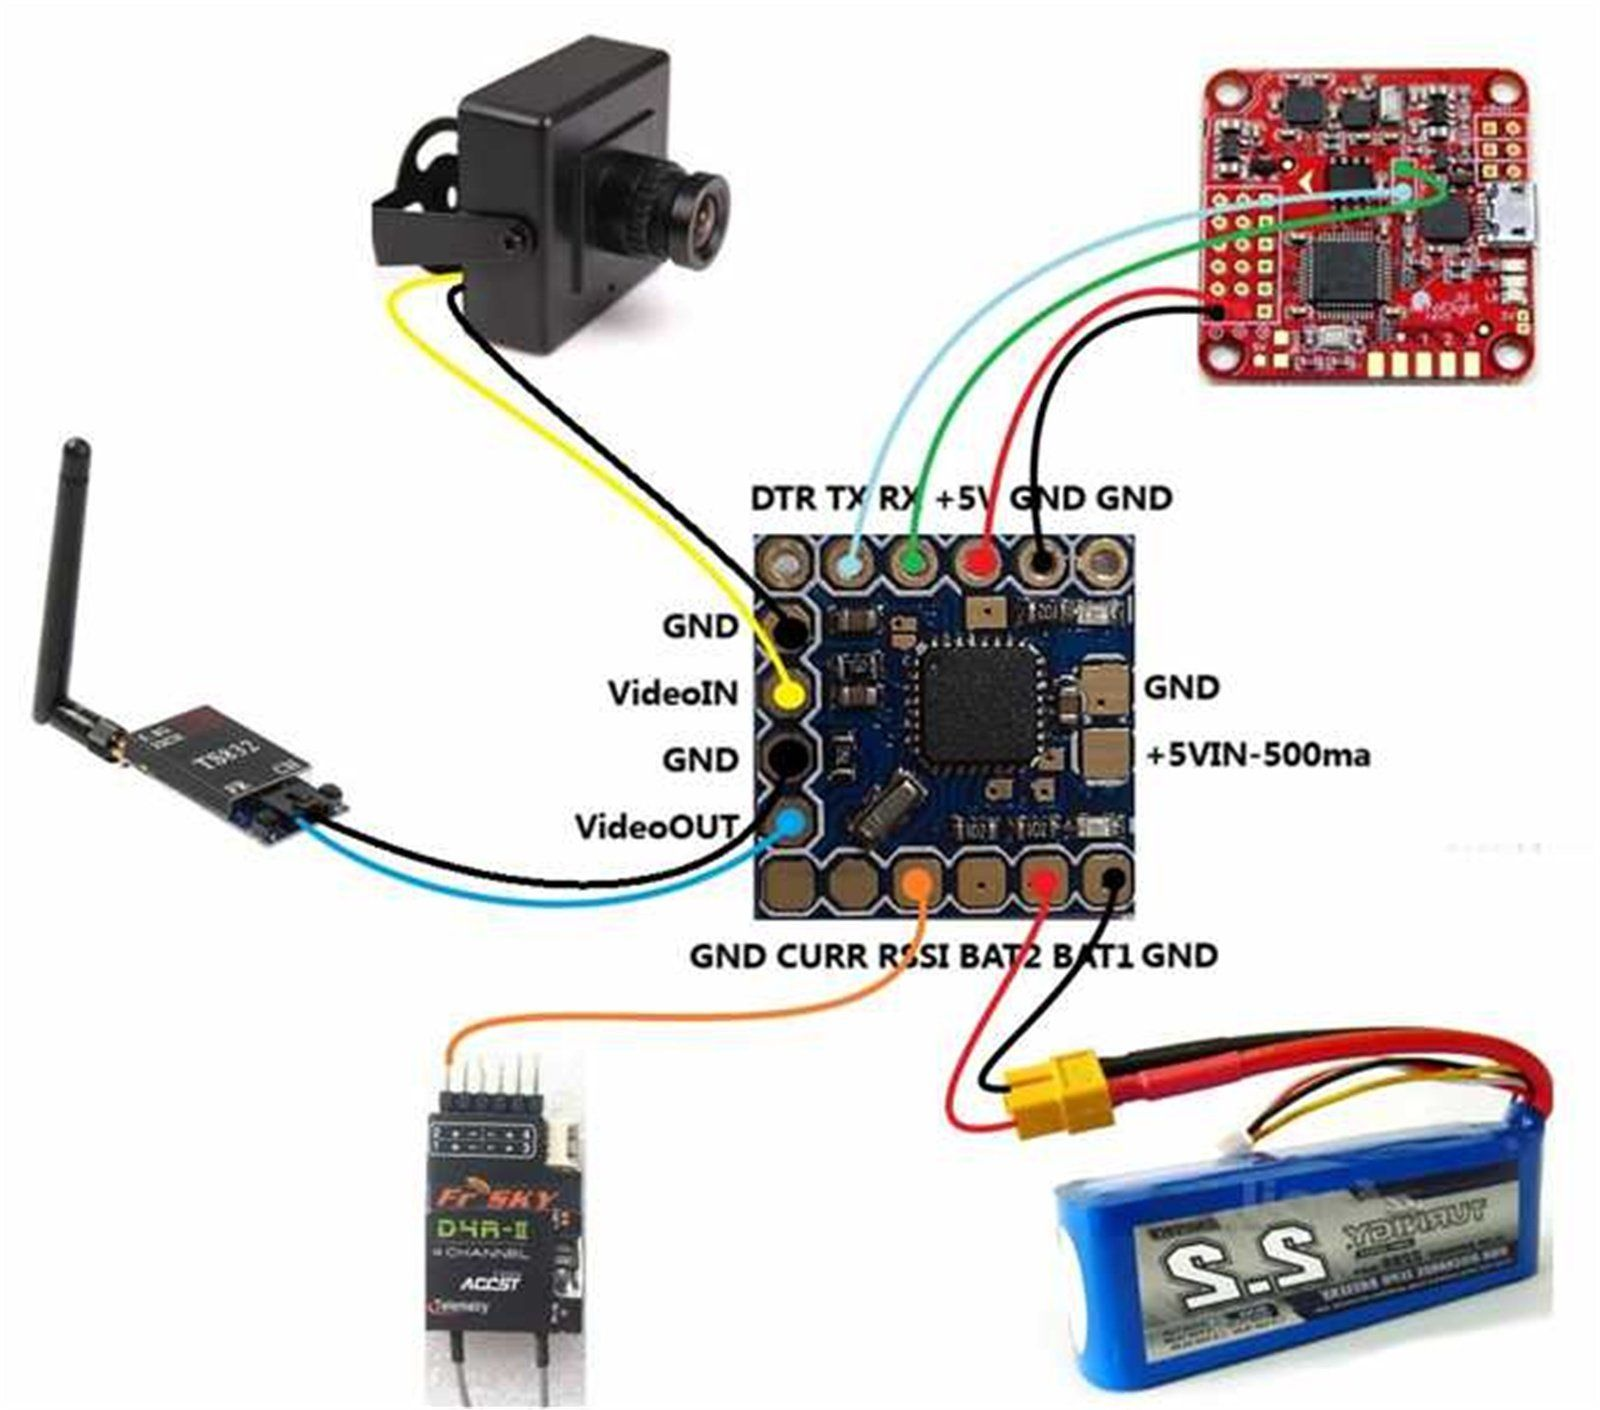 miniosd?w=660 fpv and osd gr33nonline ts5823 wiring diagram at gsmx.co